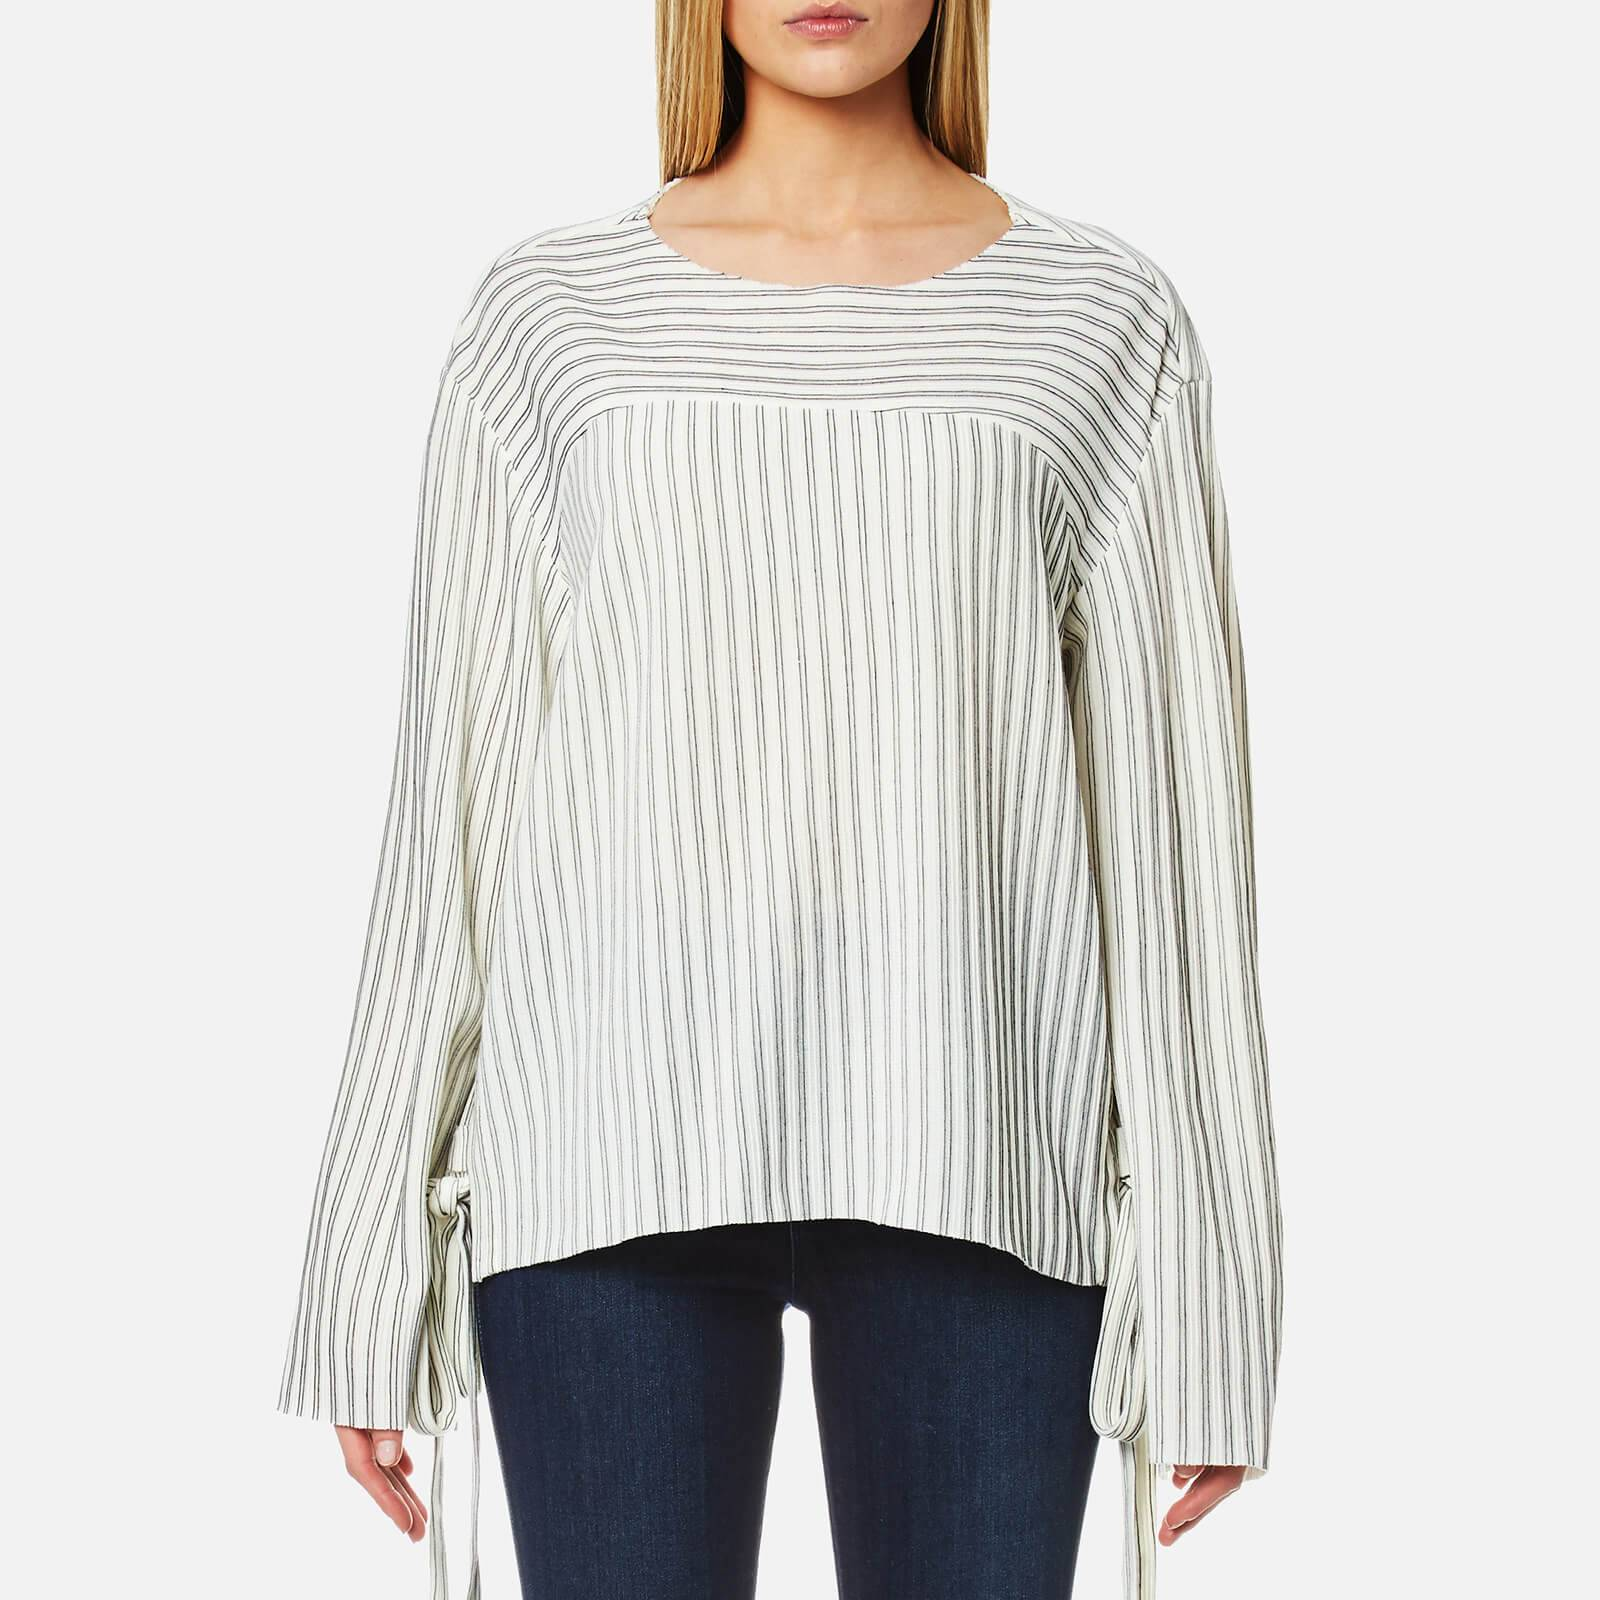 House of Sunny Women's Lace Up Stripe Top - Stripp - UK 6 - White